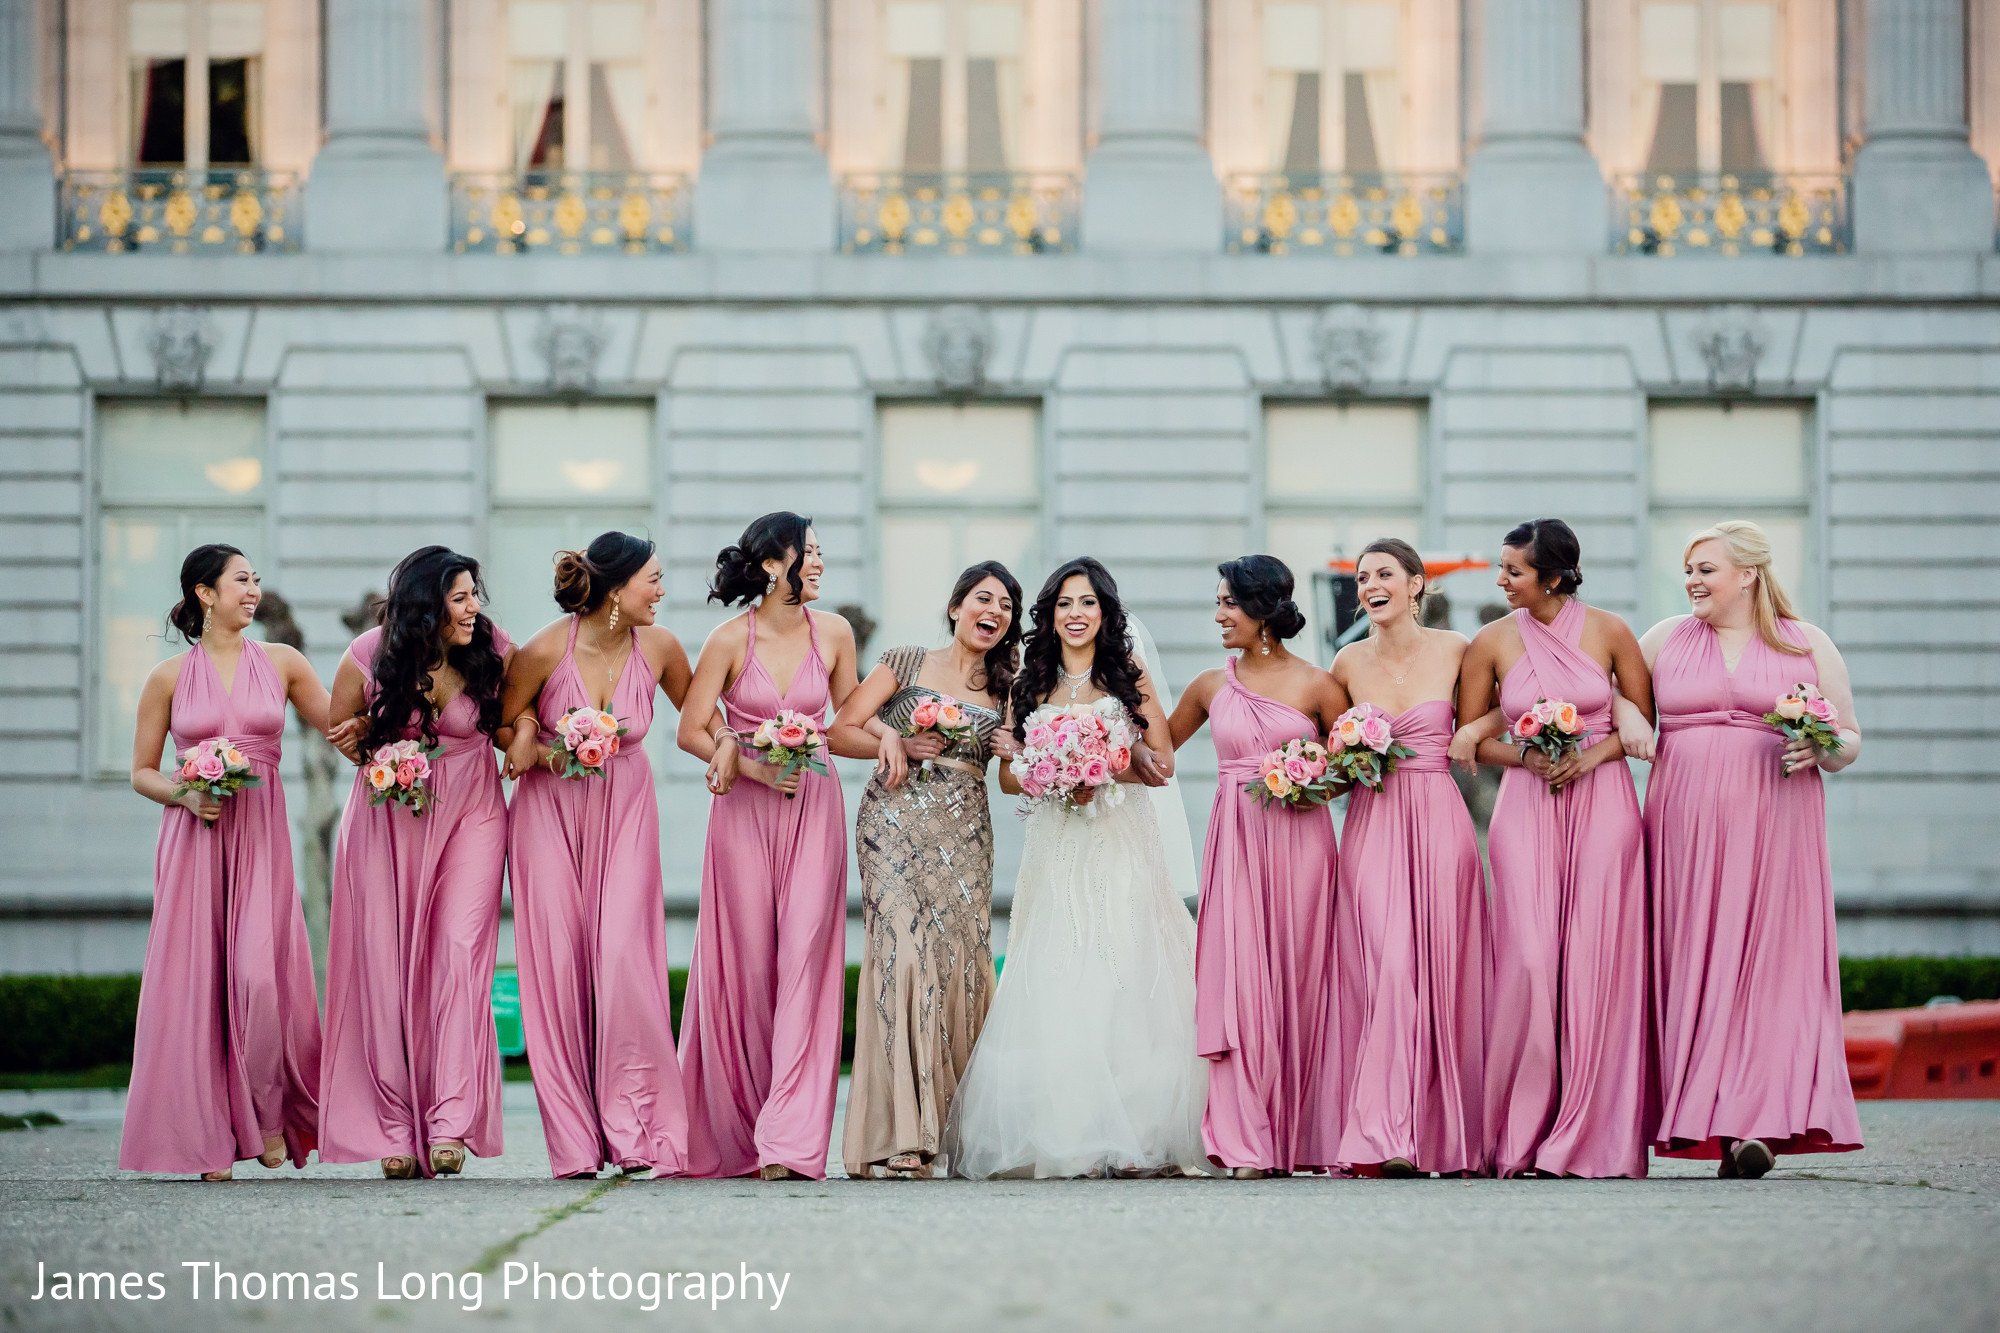 Bridal Party Portrait In San Francisco CA Indian Wedding By James Thomas Long Photography